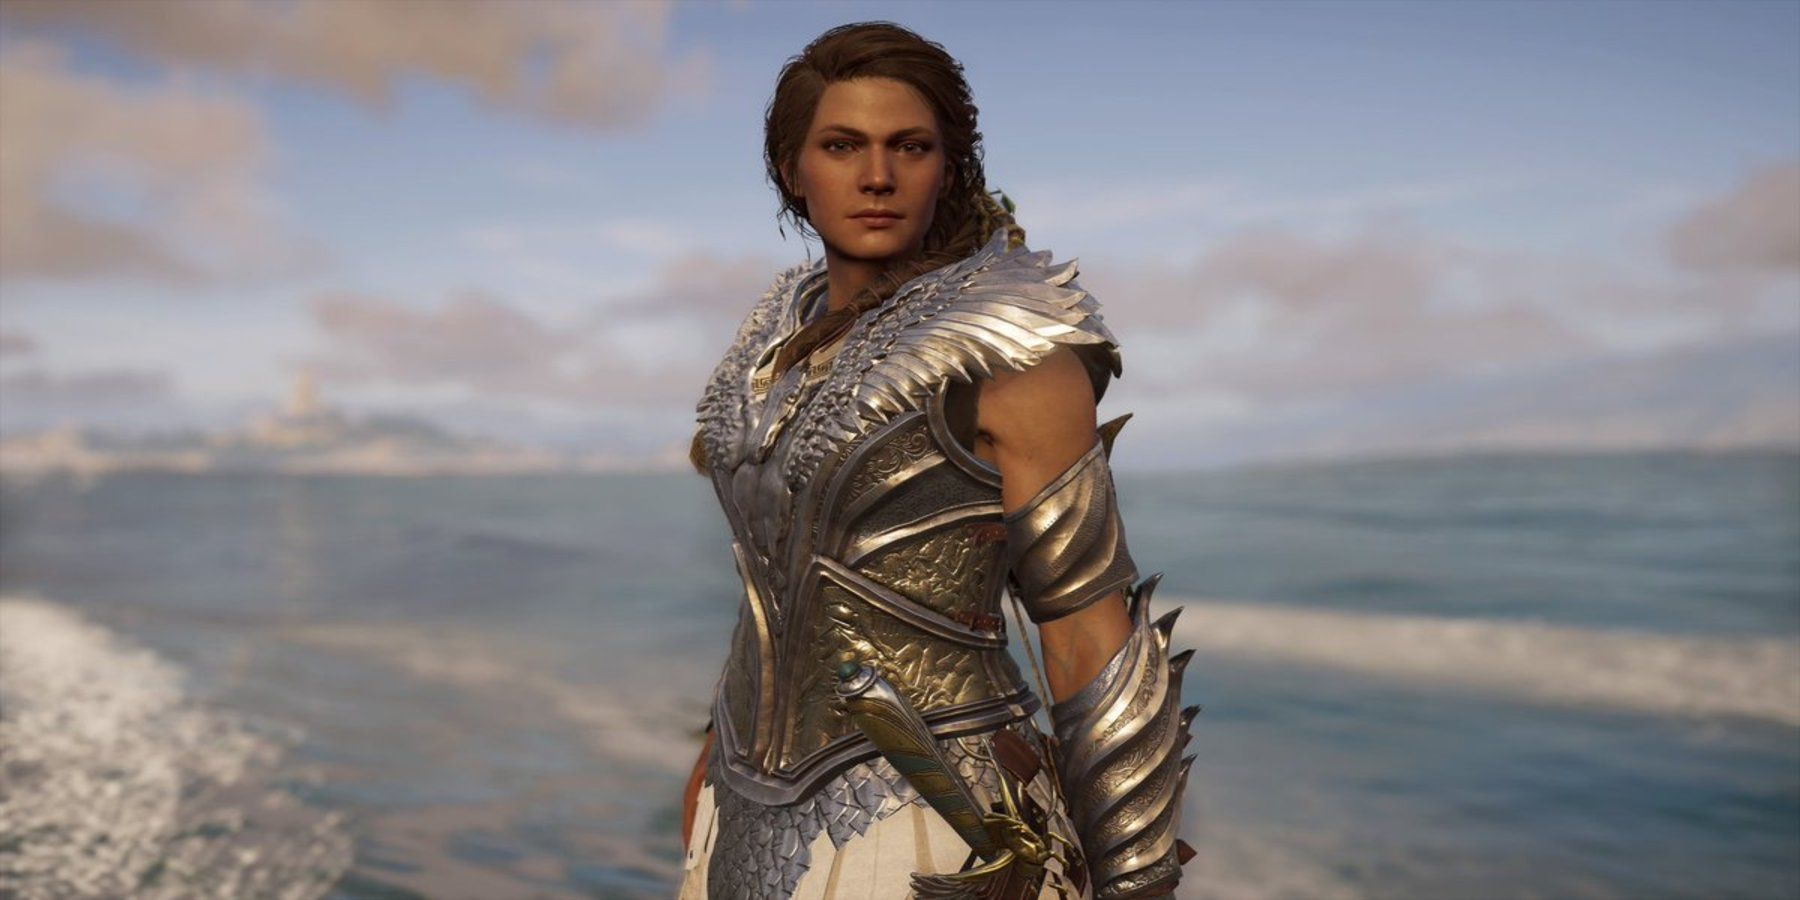 Amazing Fan Art Combines The Witcher 3's Yennefer And Assassin's Creed Odyssey's Kassandra